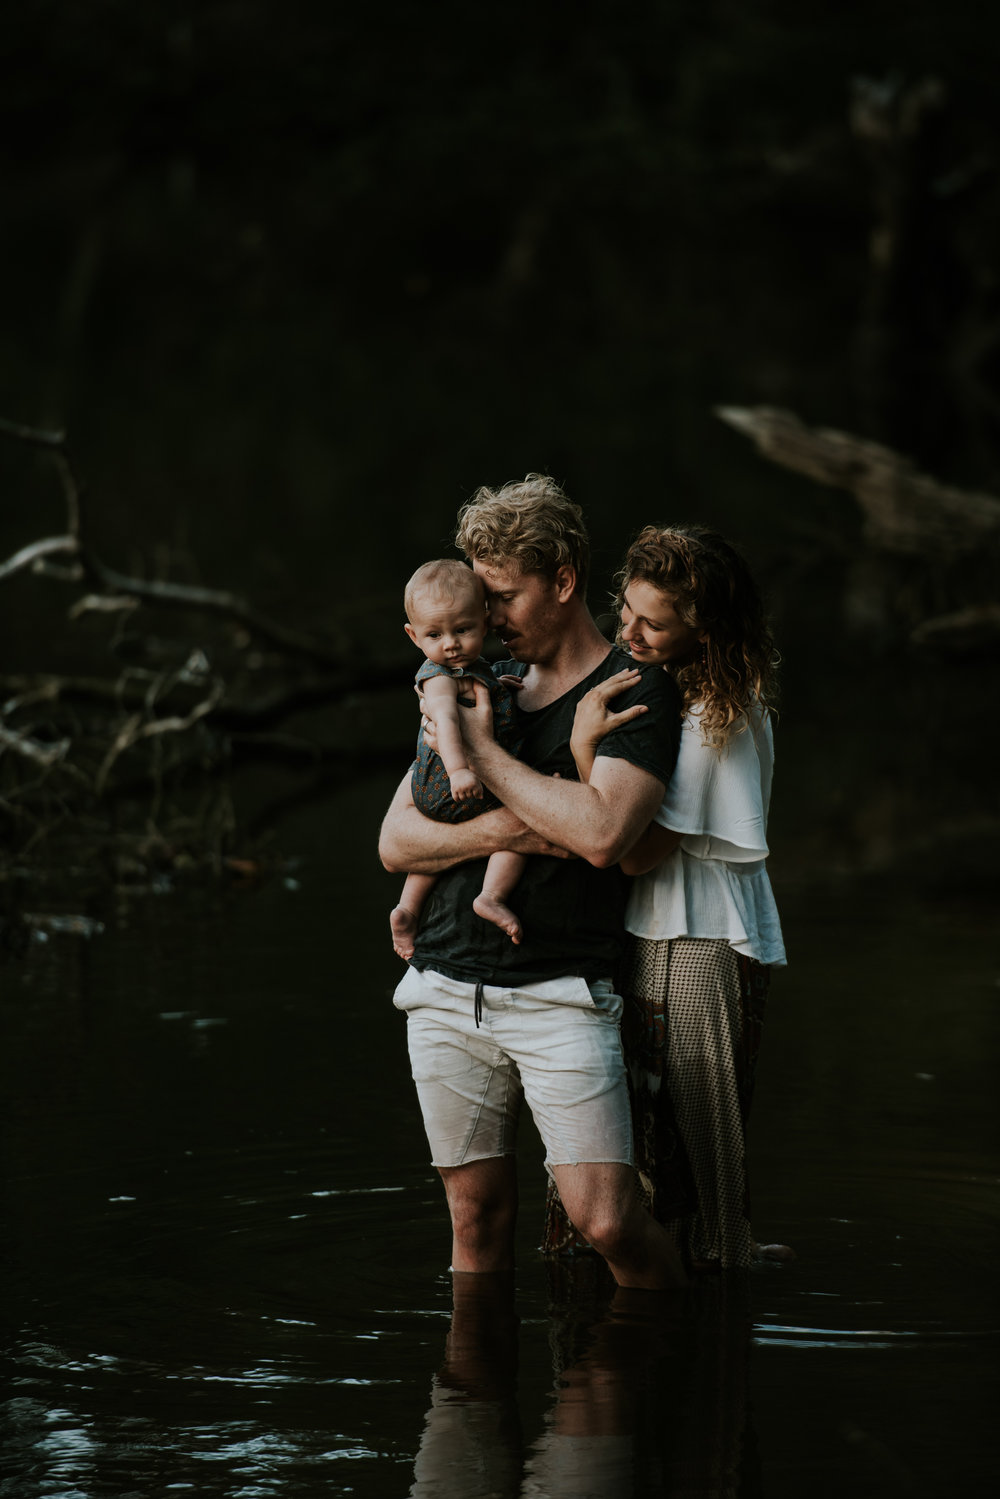 Brisbane Family Photographer | Newborn-Lifestyle Photography-31.jpg